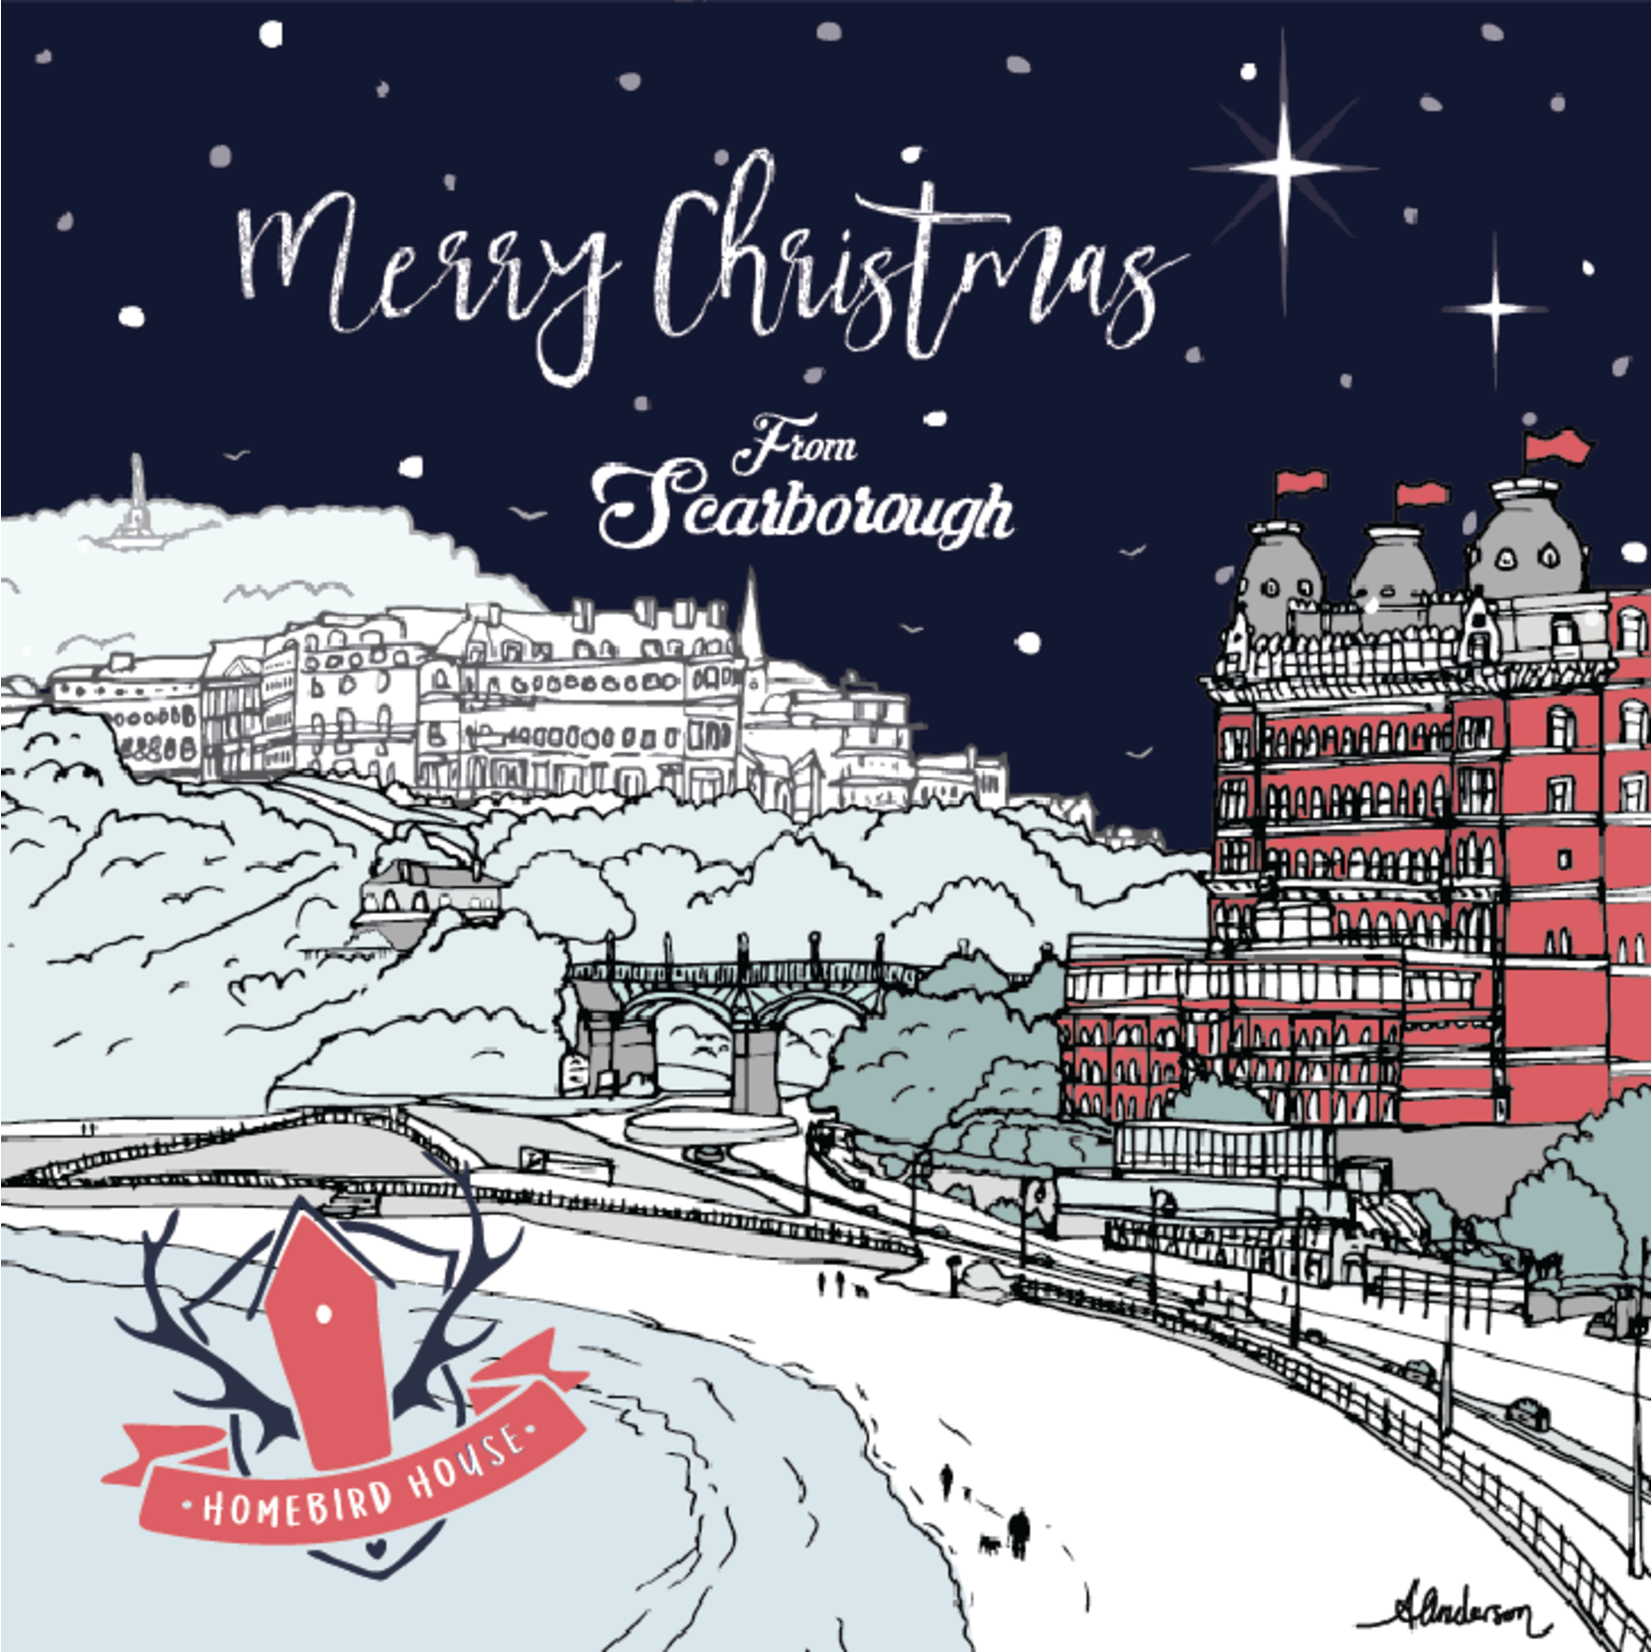 Homebird Cards ALEX ANDERSON 2020 CHRISTMAS CARD ILLUSTRATION SCARBOROUGH OLIVERS MOUNT